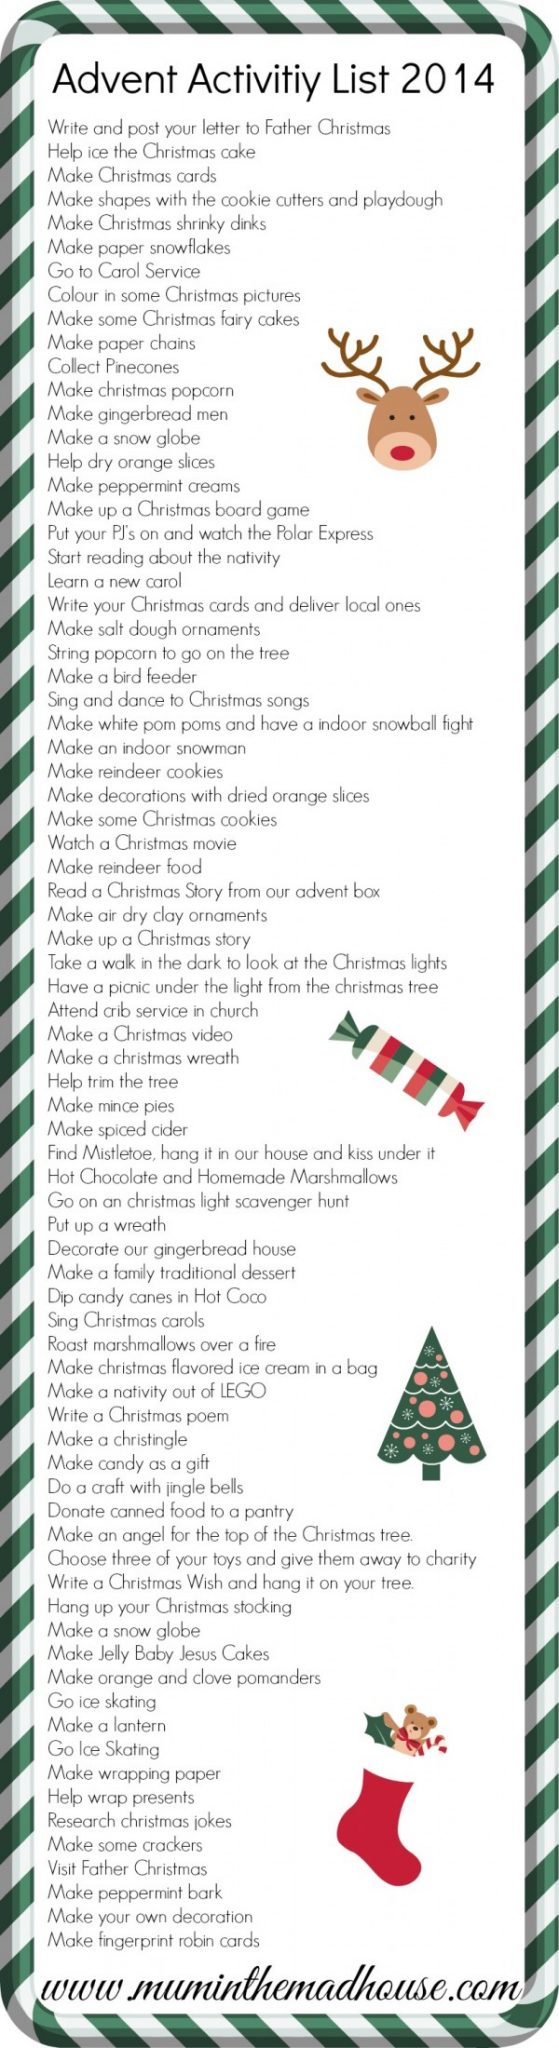 Ultimate advent activity list 2014